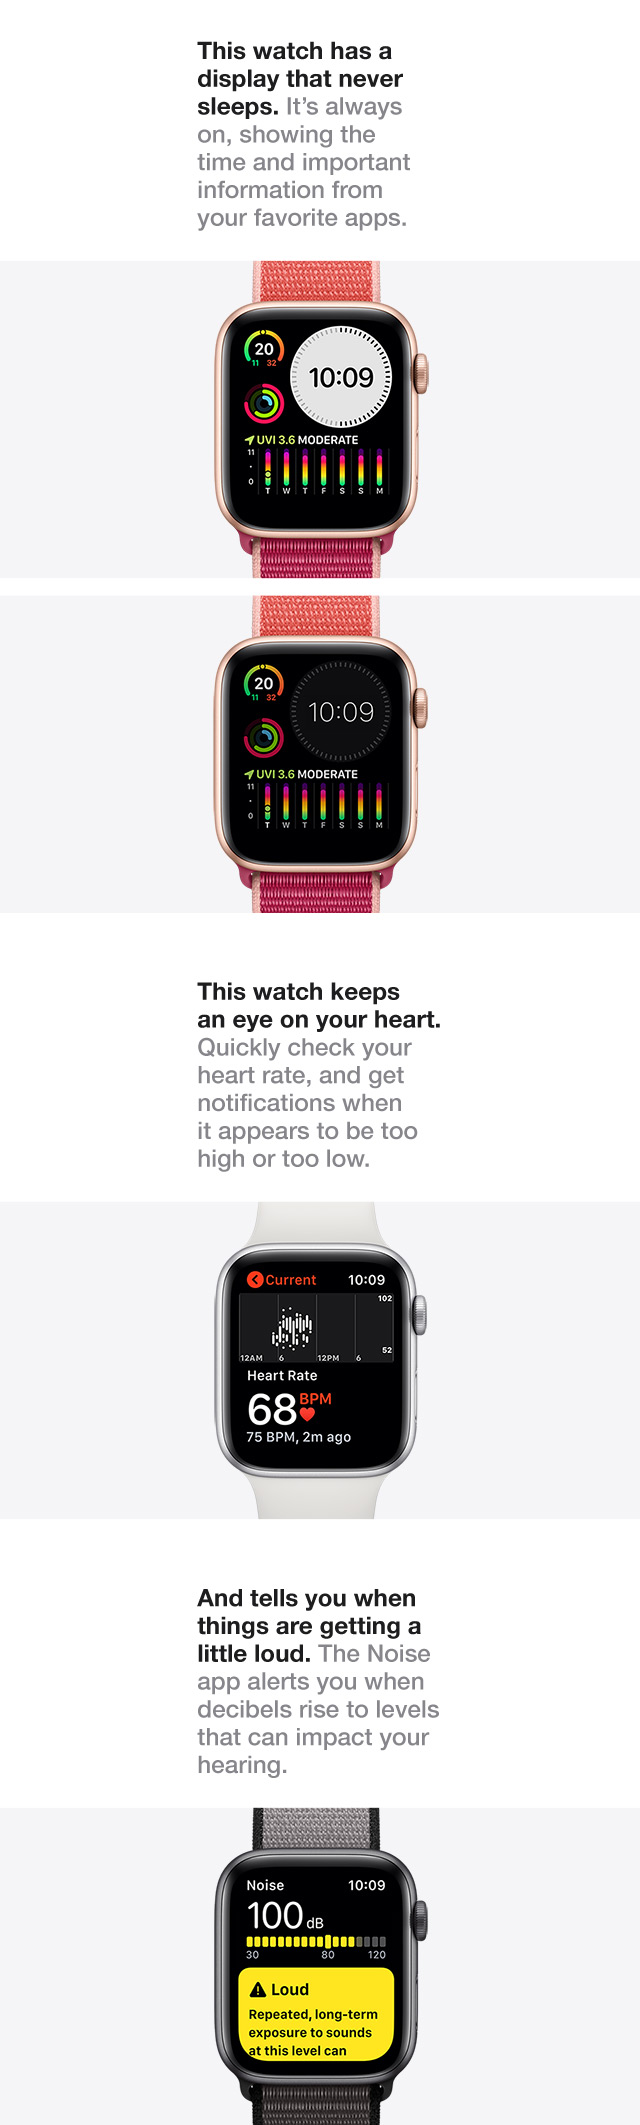 Watch have display that never sleeps.